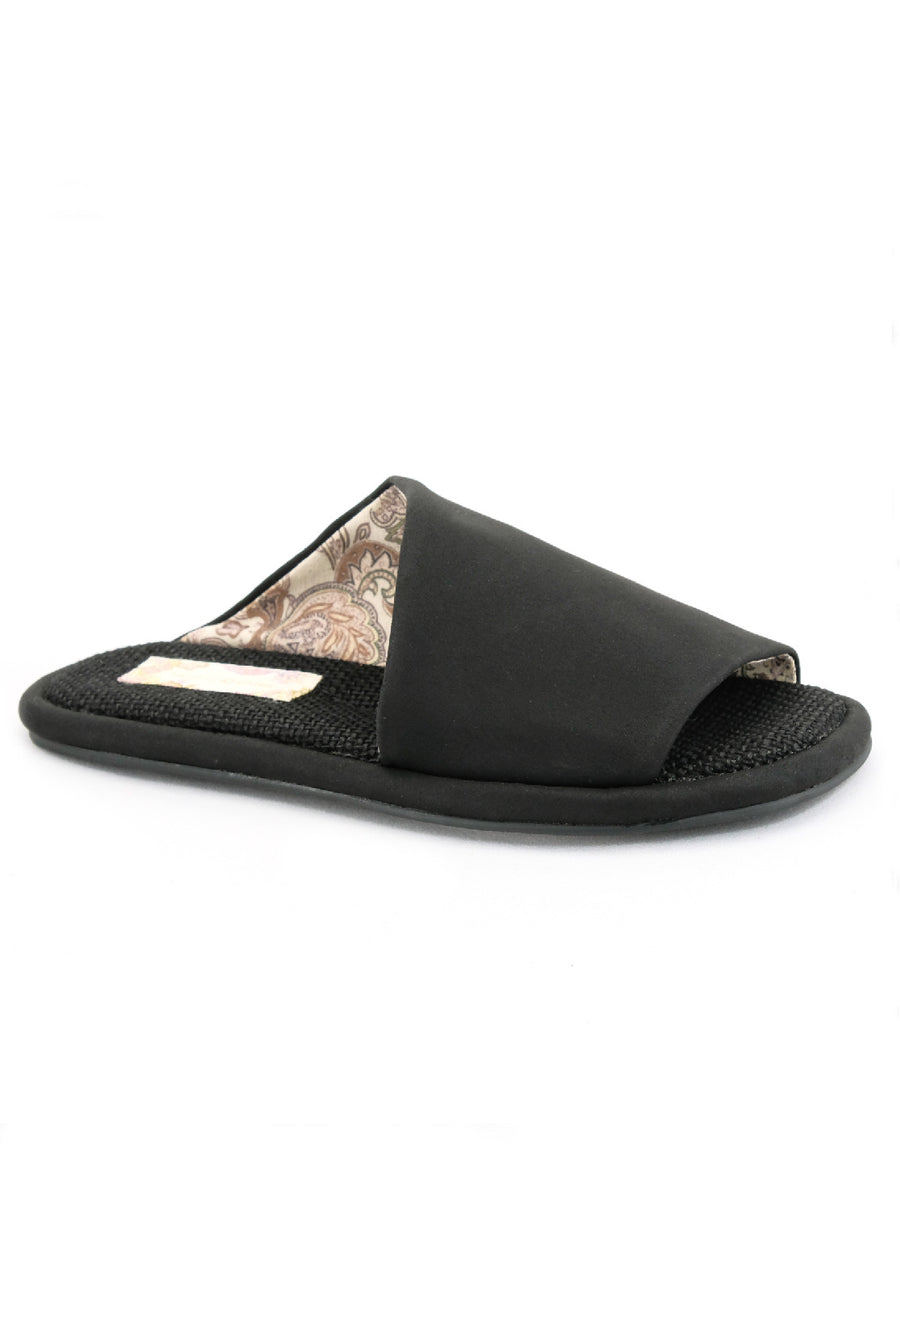 Maya Brushed Satin Black Vegan Slide Sandal Master